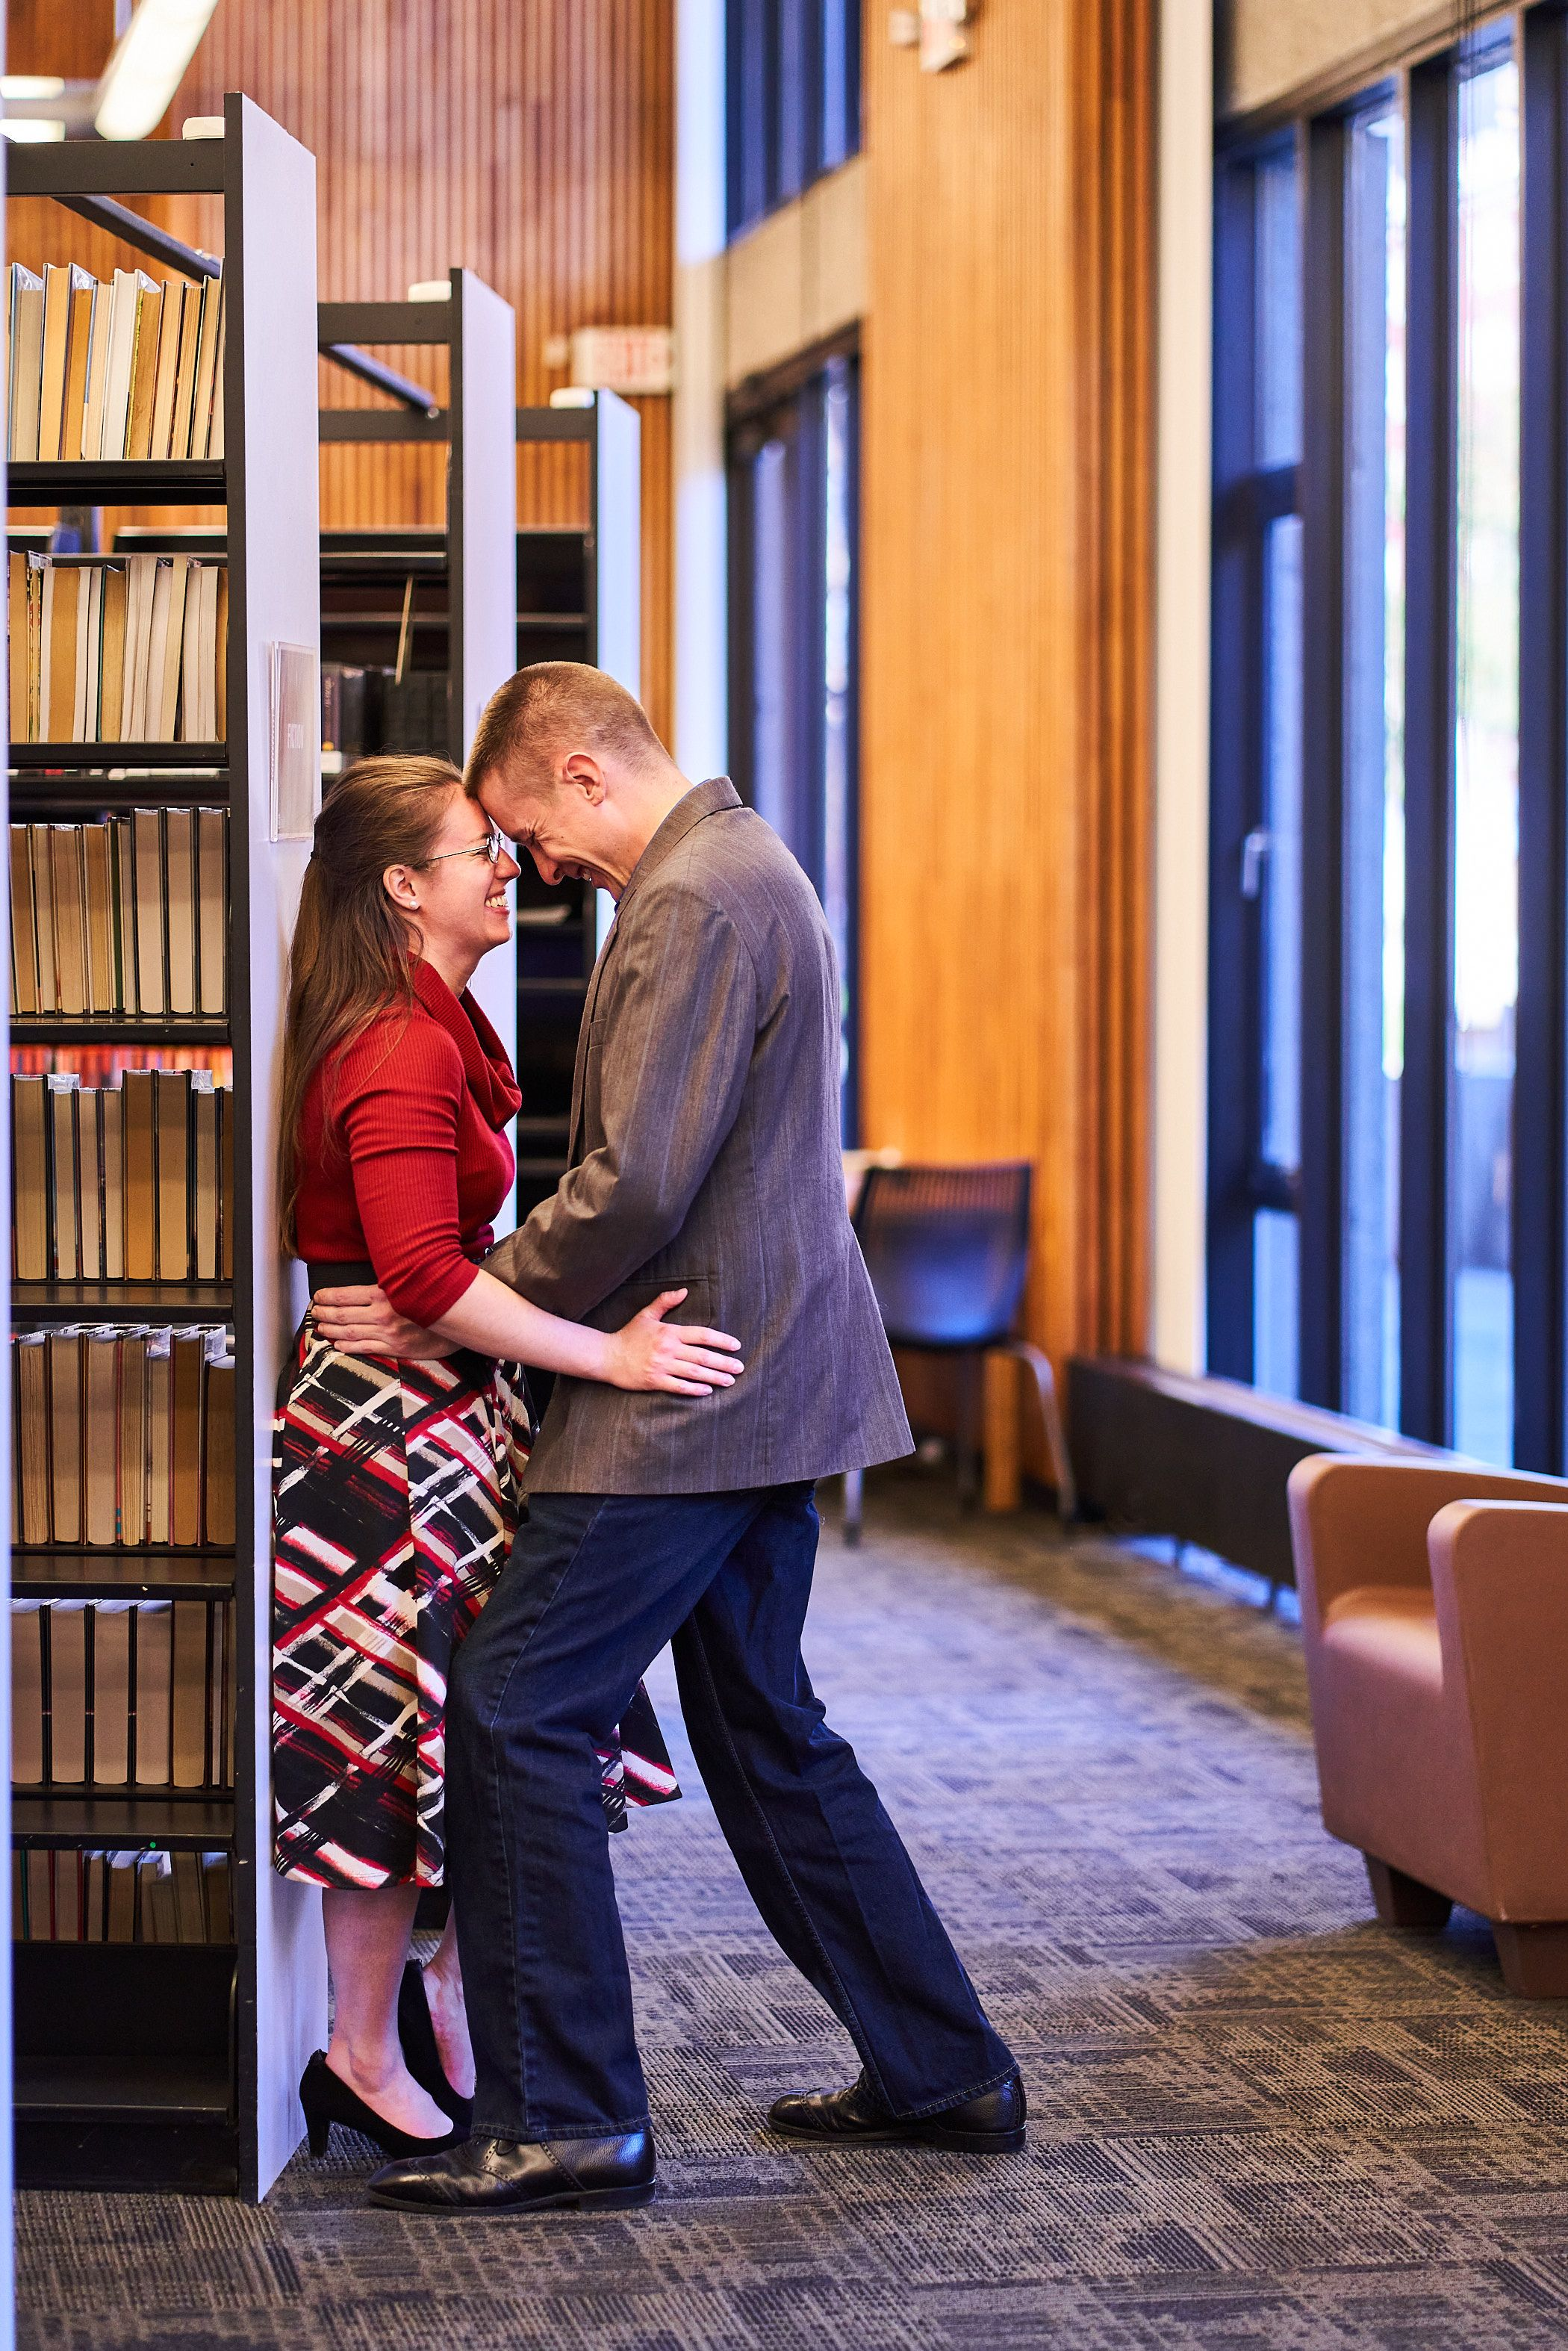 Kristin and Jessie in Louisville Public Library in downtown Louisville, Kentucky.